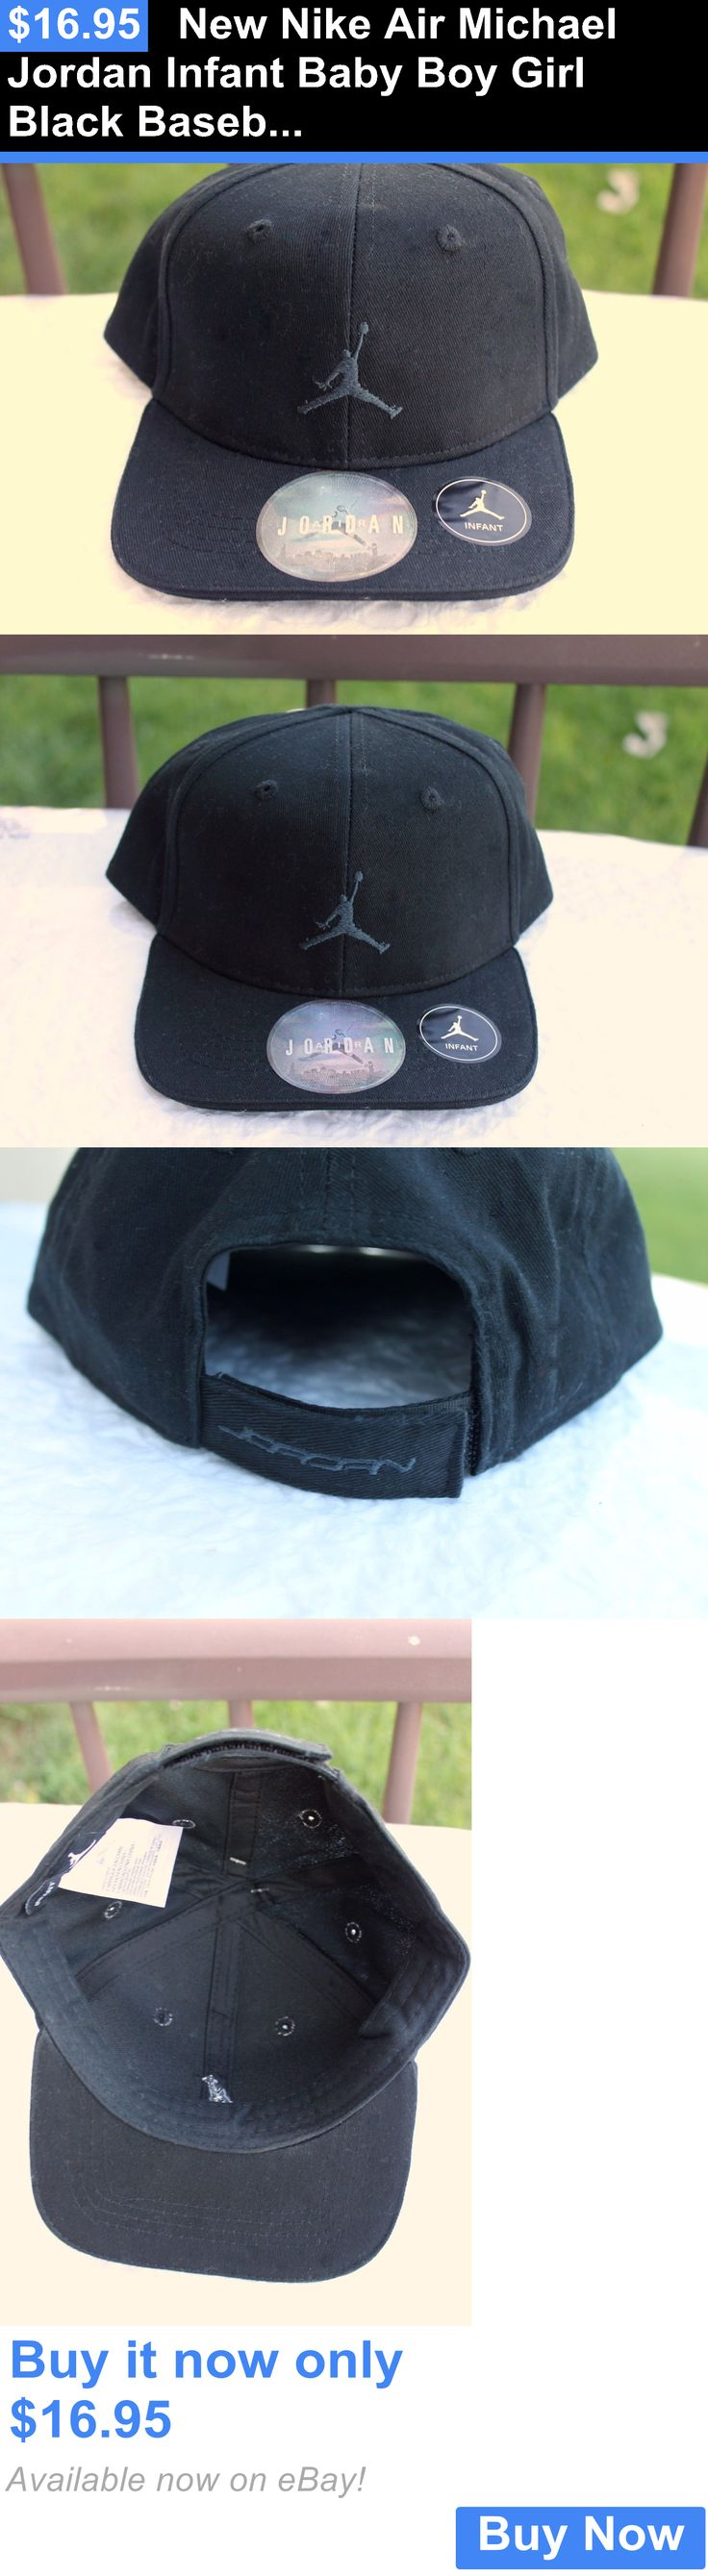 f3c838f0a77fe6 ... germany cap organizer michael jordan baby clothing new nike air michael  jordan infant baby boy girl